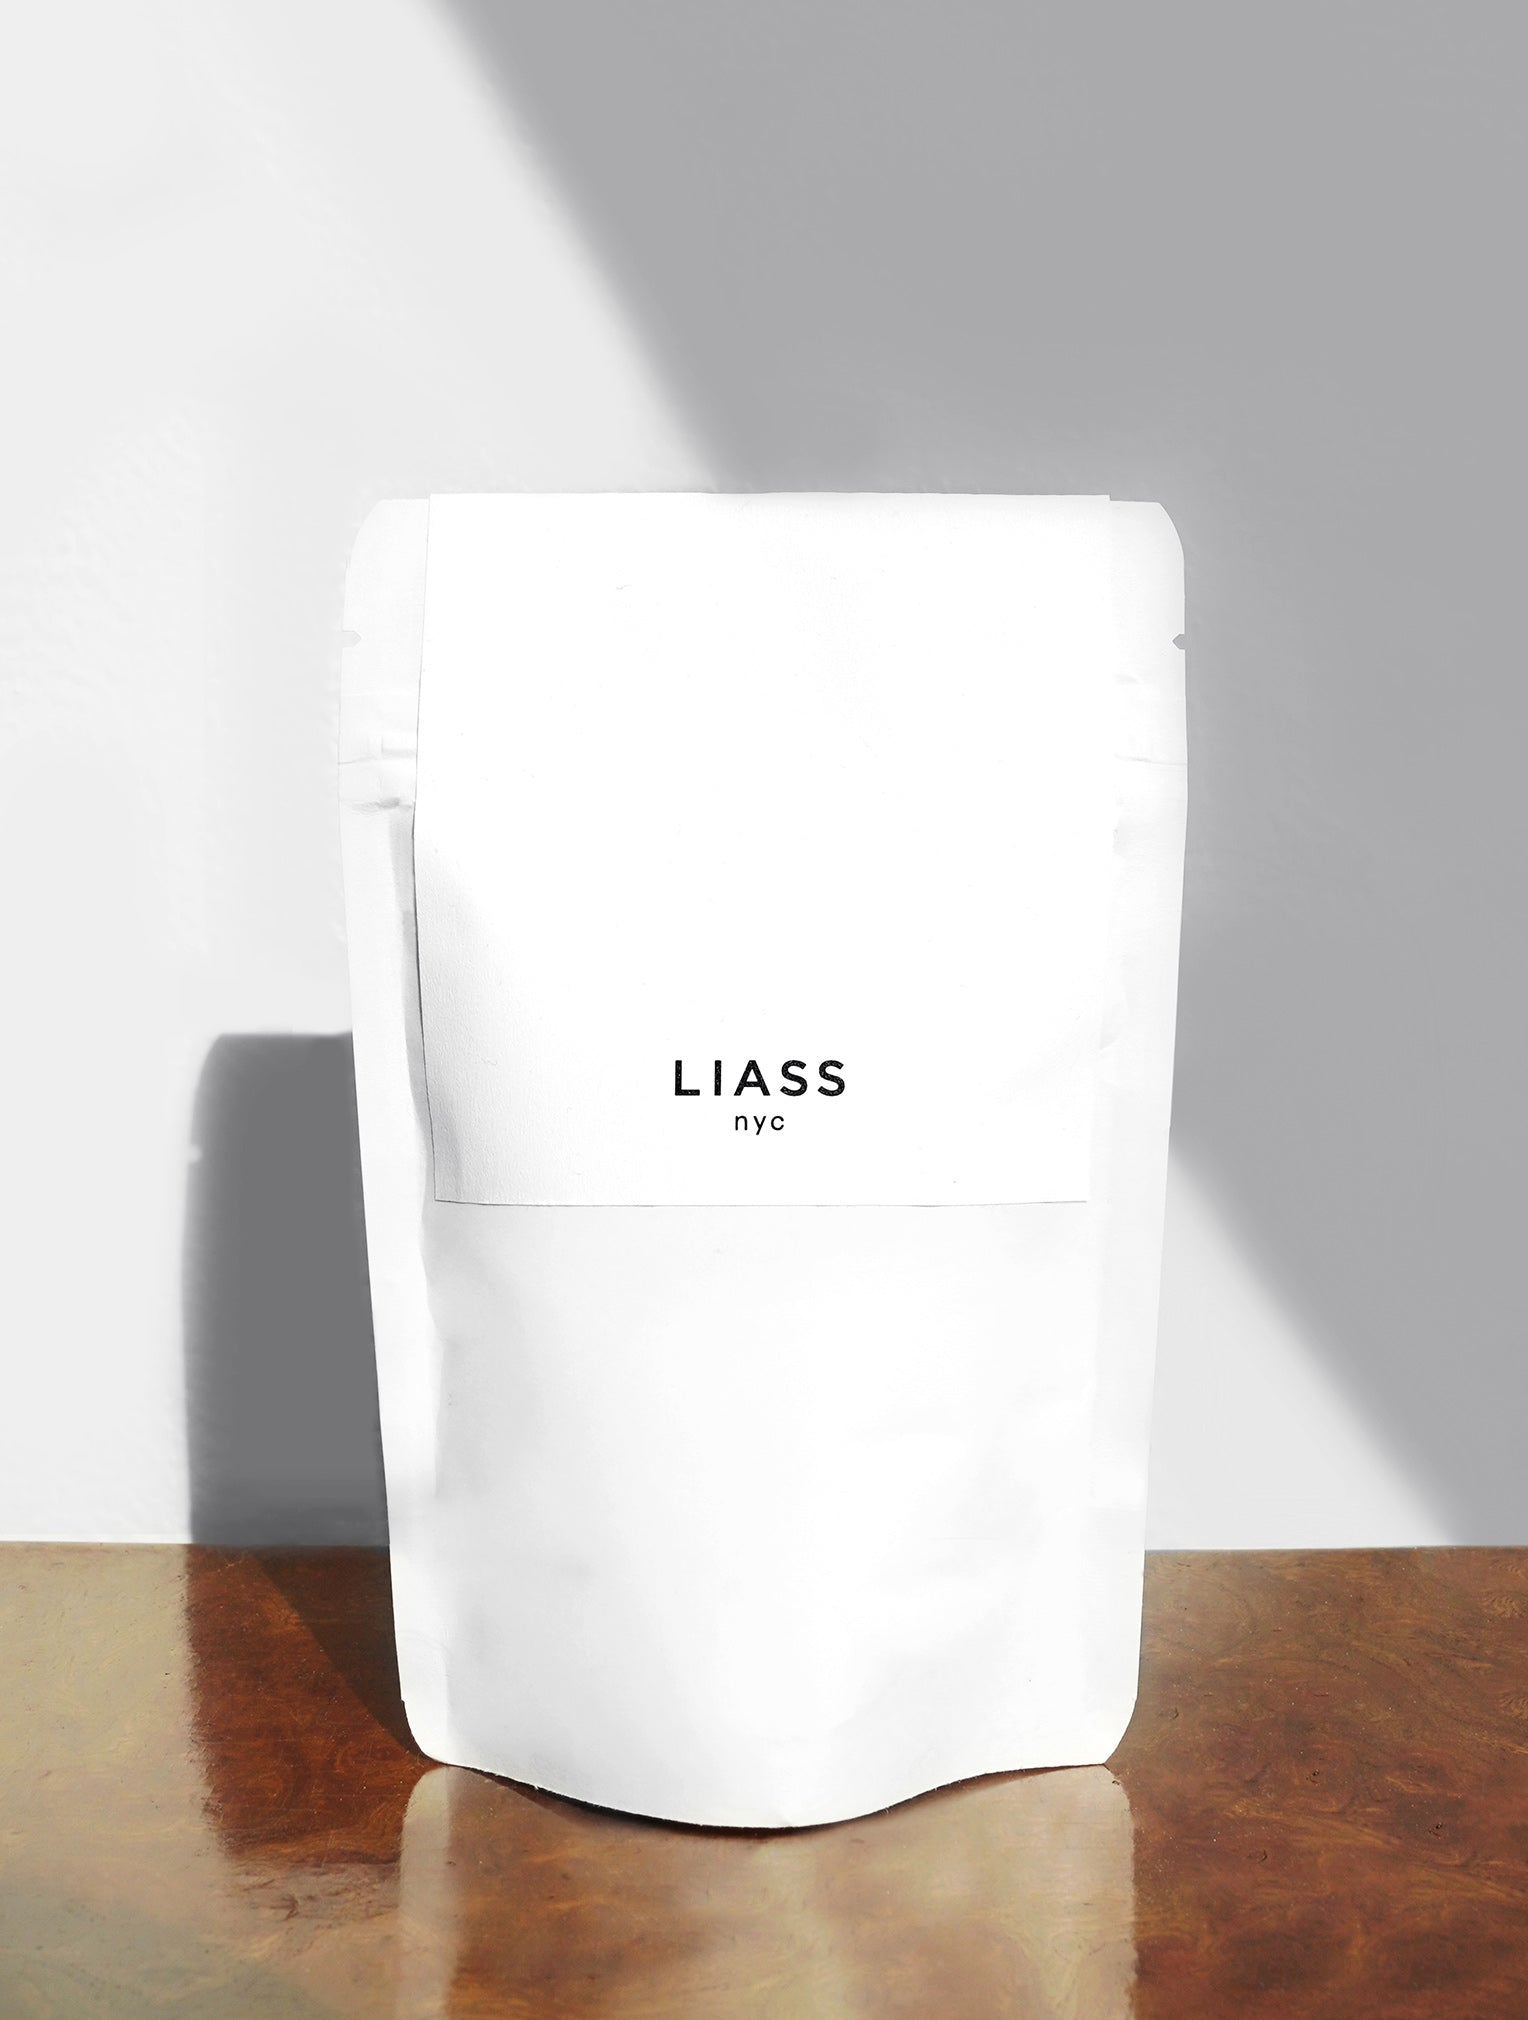 Liass Nyc Delicate hand wash